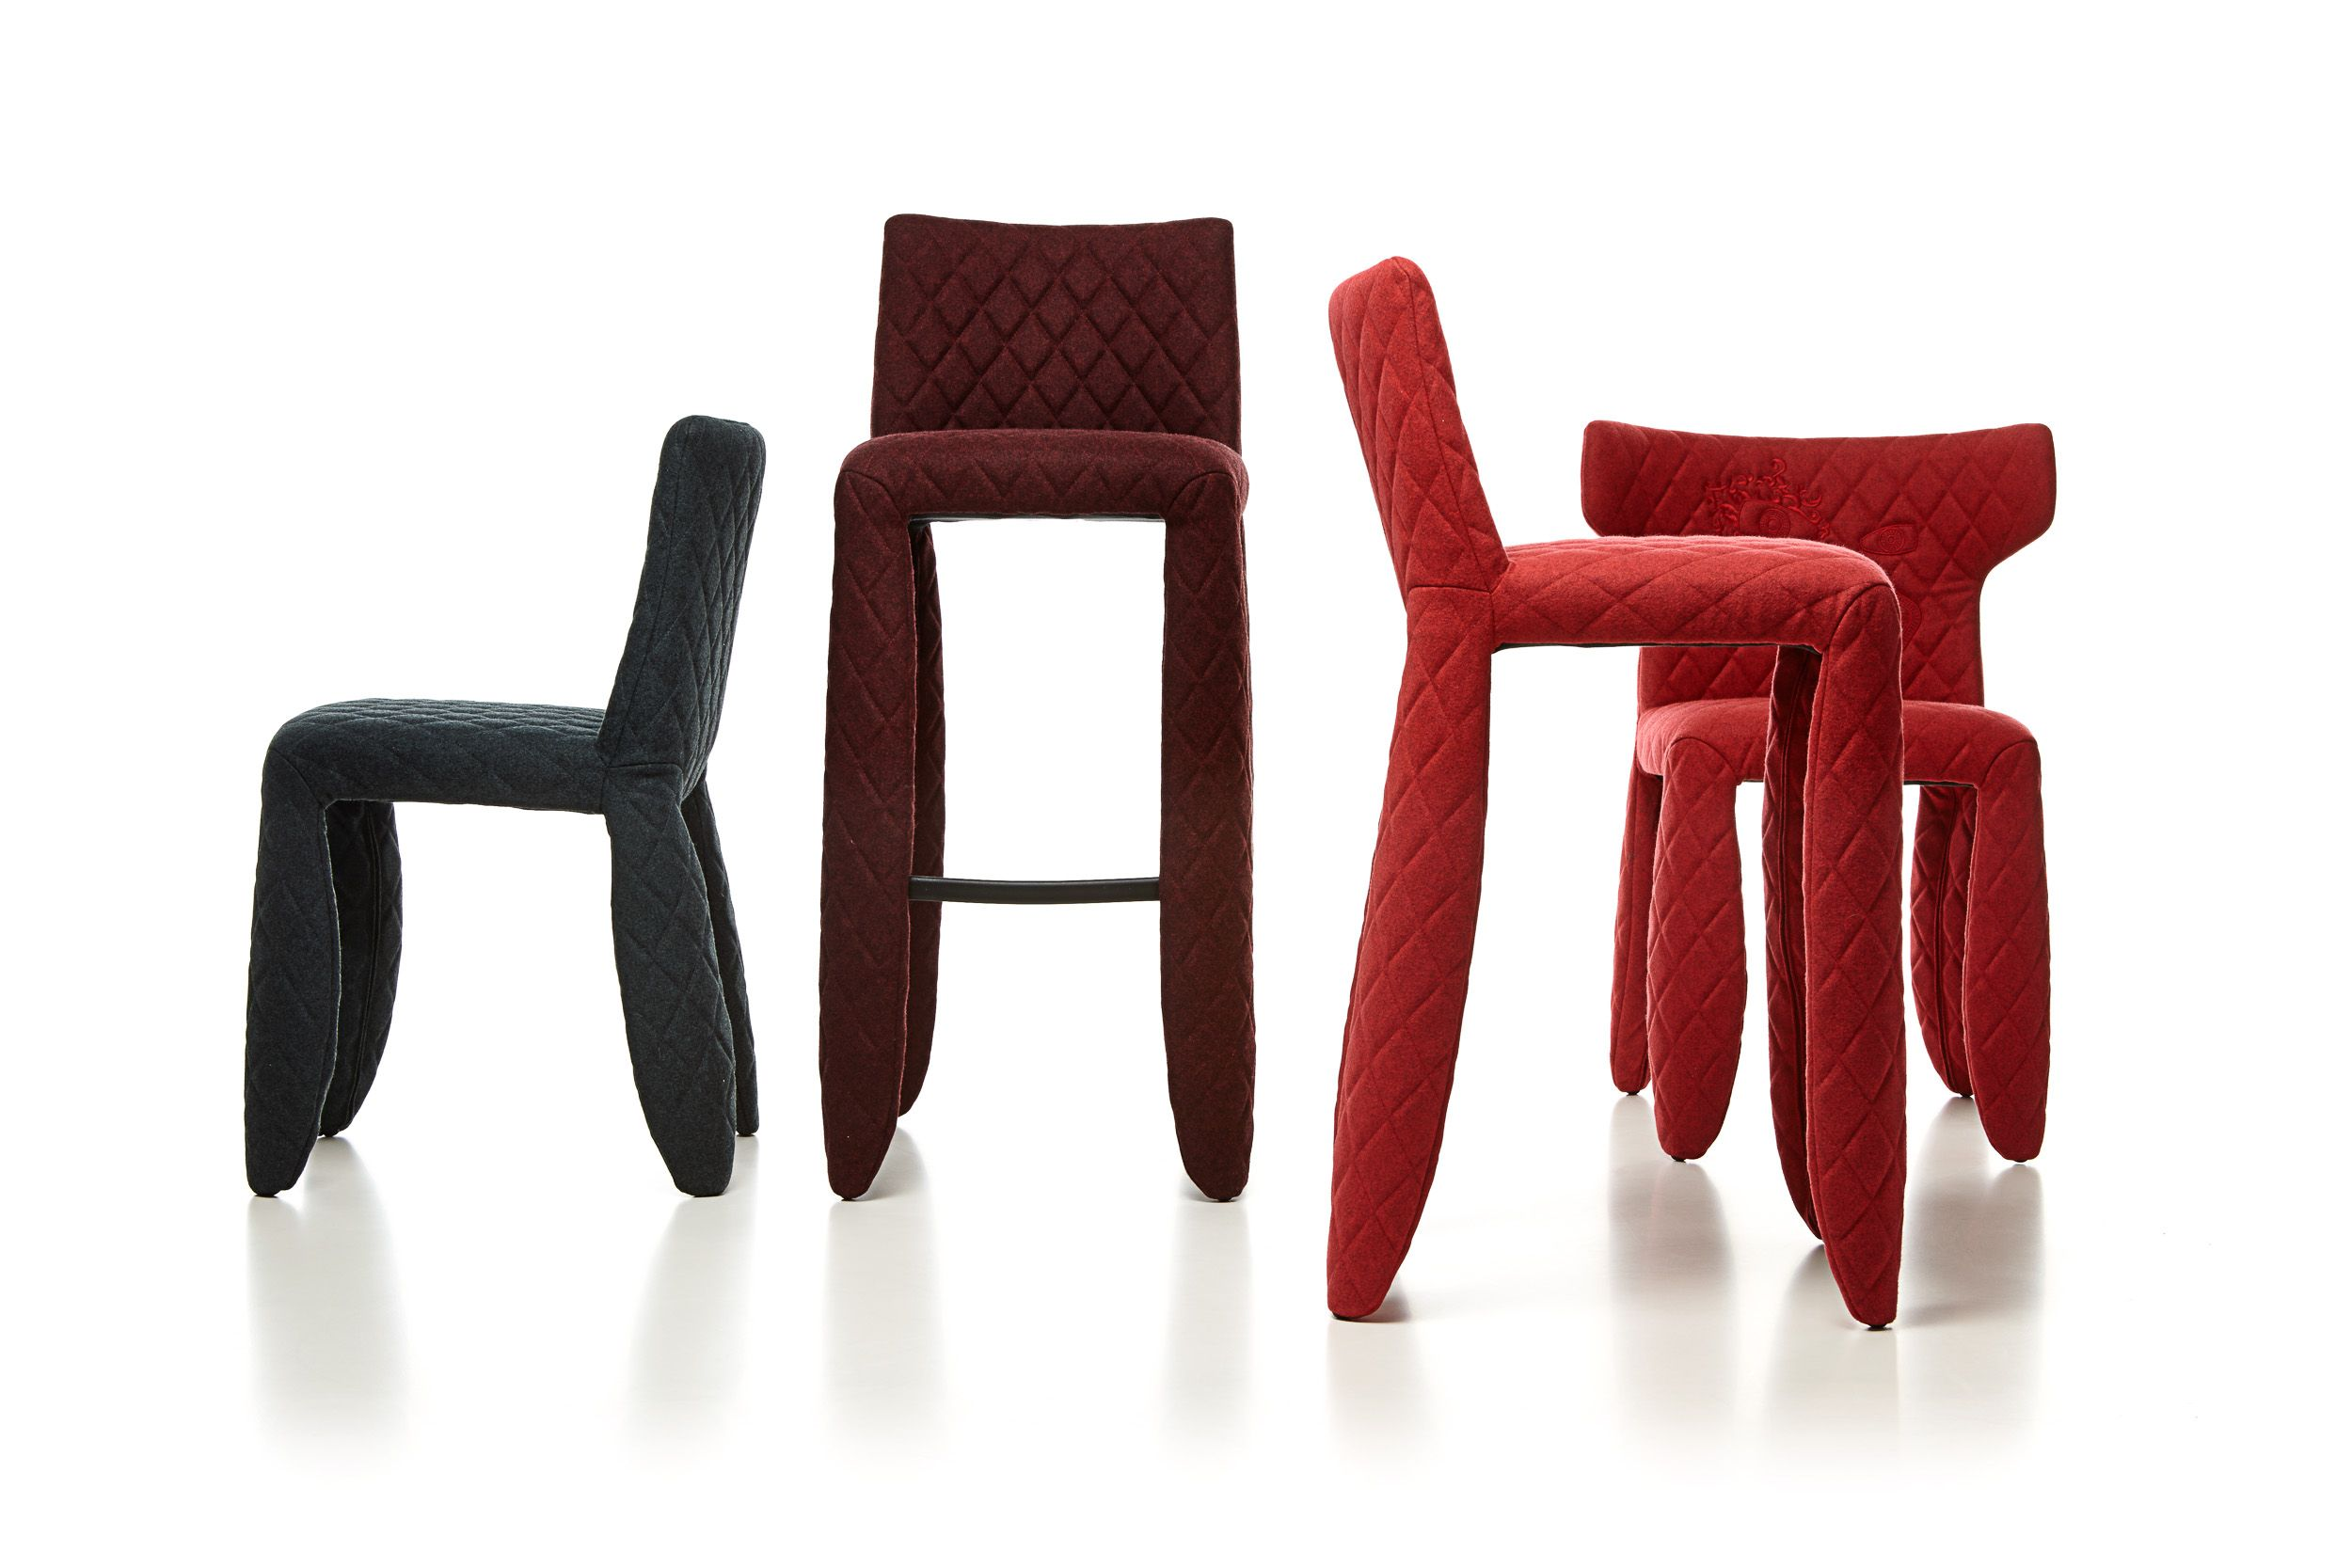 monster_barstool_chairs_divina_784-forweb-moooi